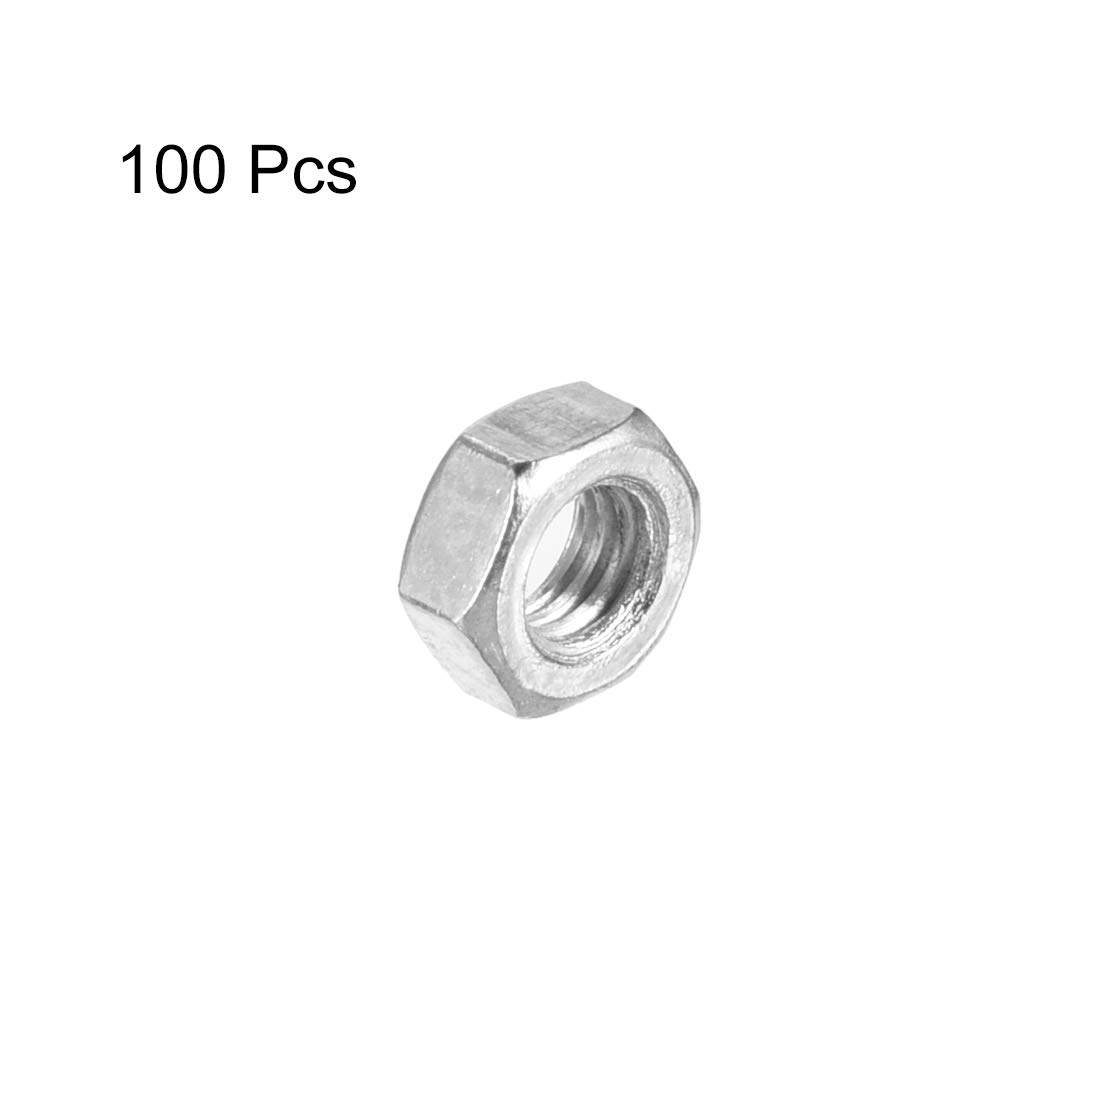 M3x0.5mm Metric Coarse Thread Hexagon Nut Pack of 100 Carbon Steel Silver Tone uxcell Hex Nuts